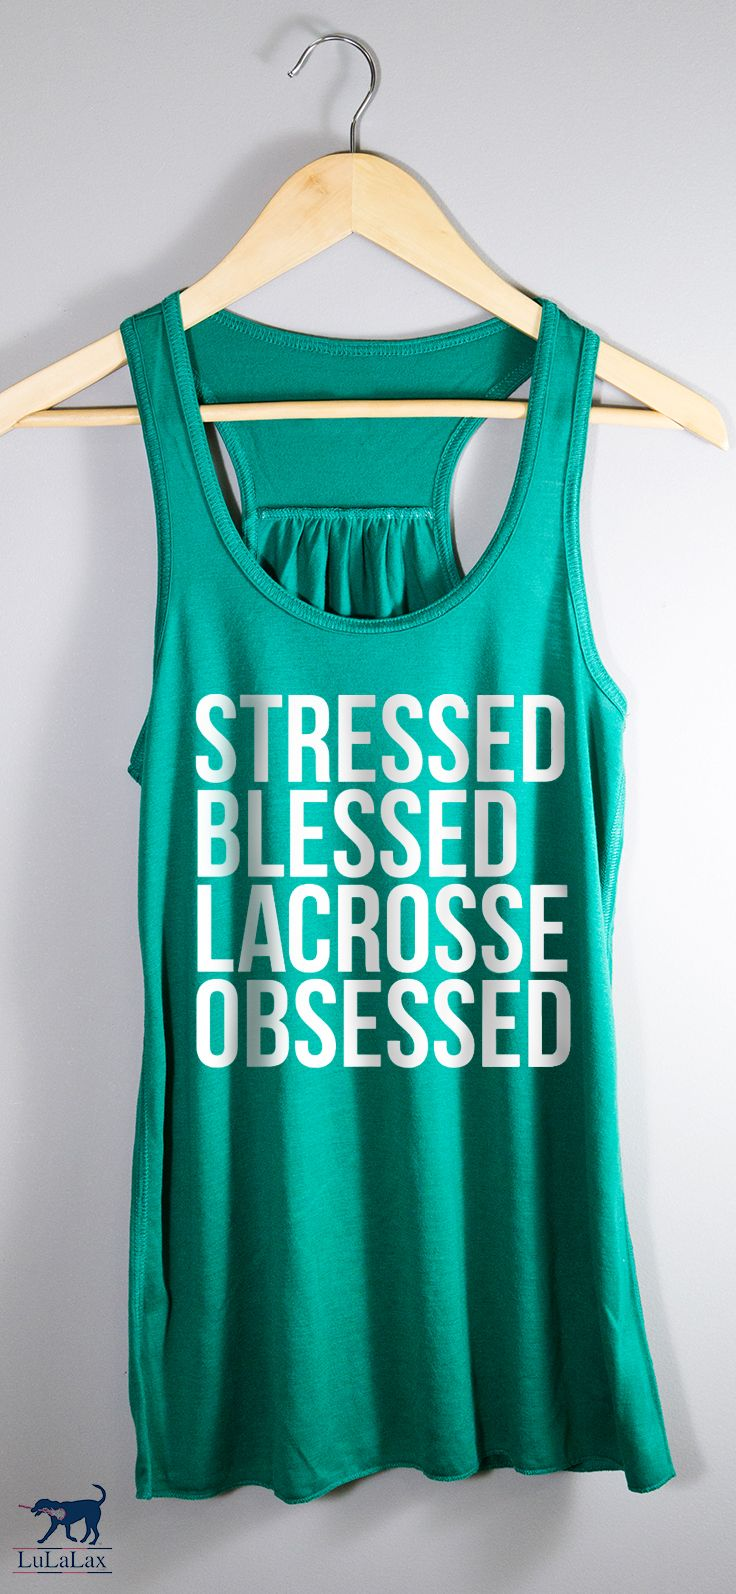 Rep the #lacrosselife with this fun tank, celebrating the lacrosse lifestyle! Perfect for a player, parent, or fan!